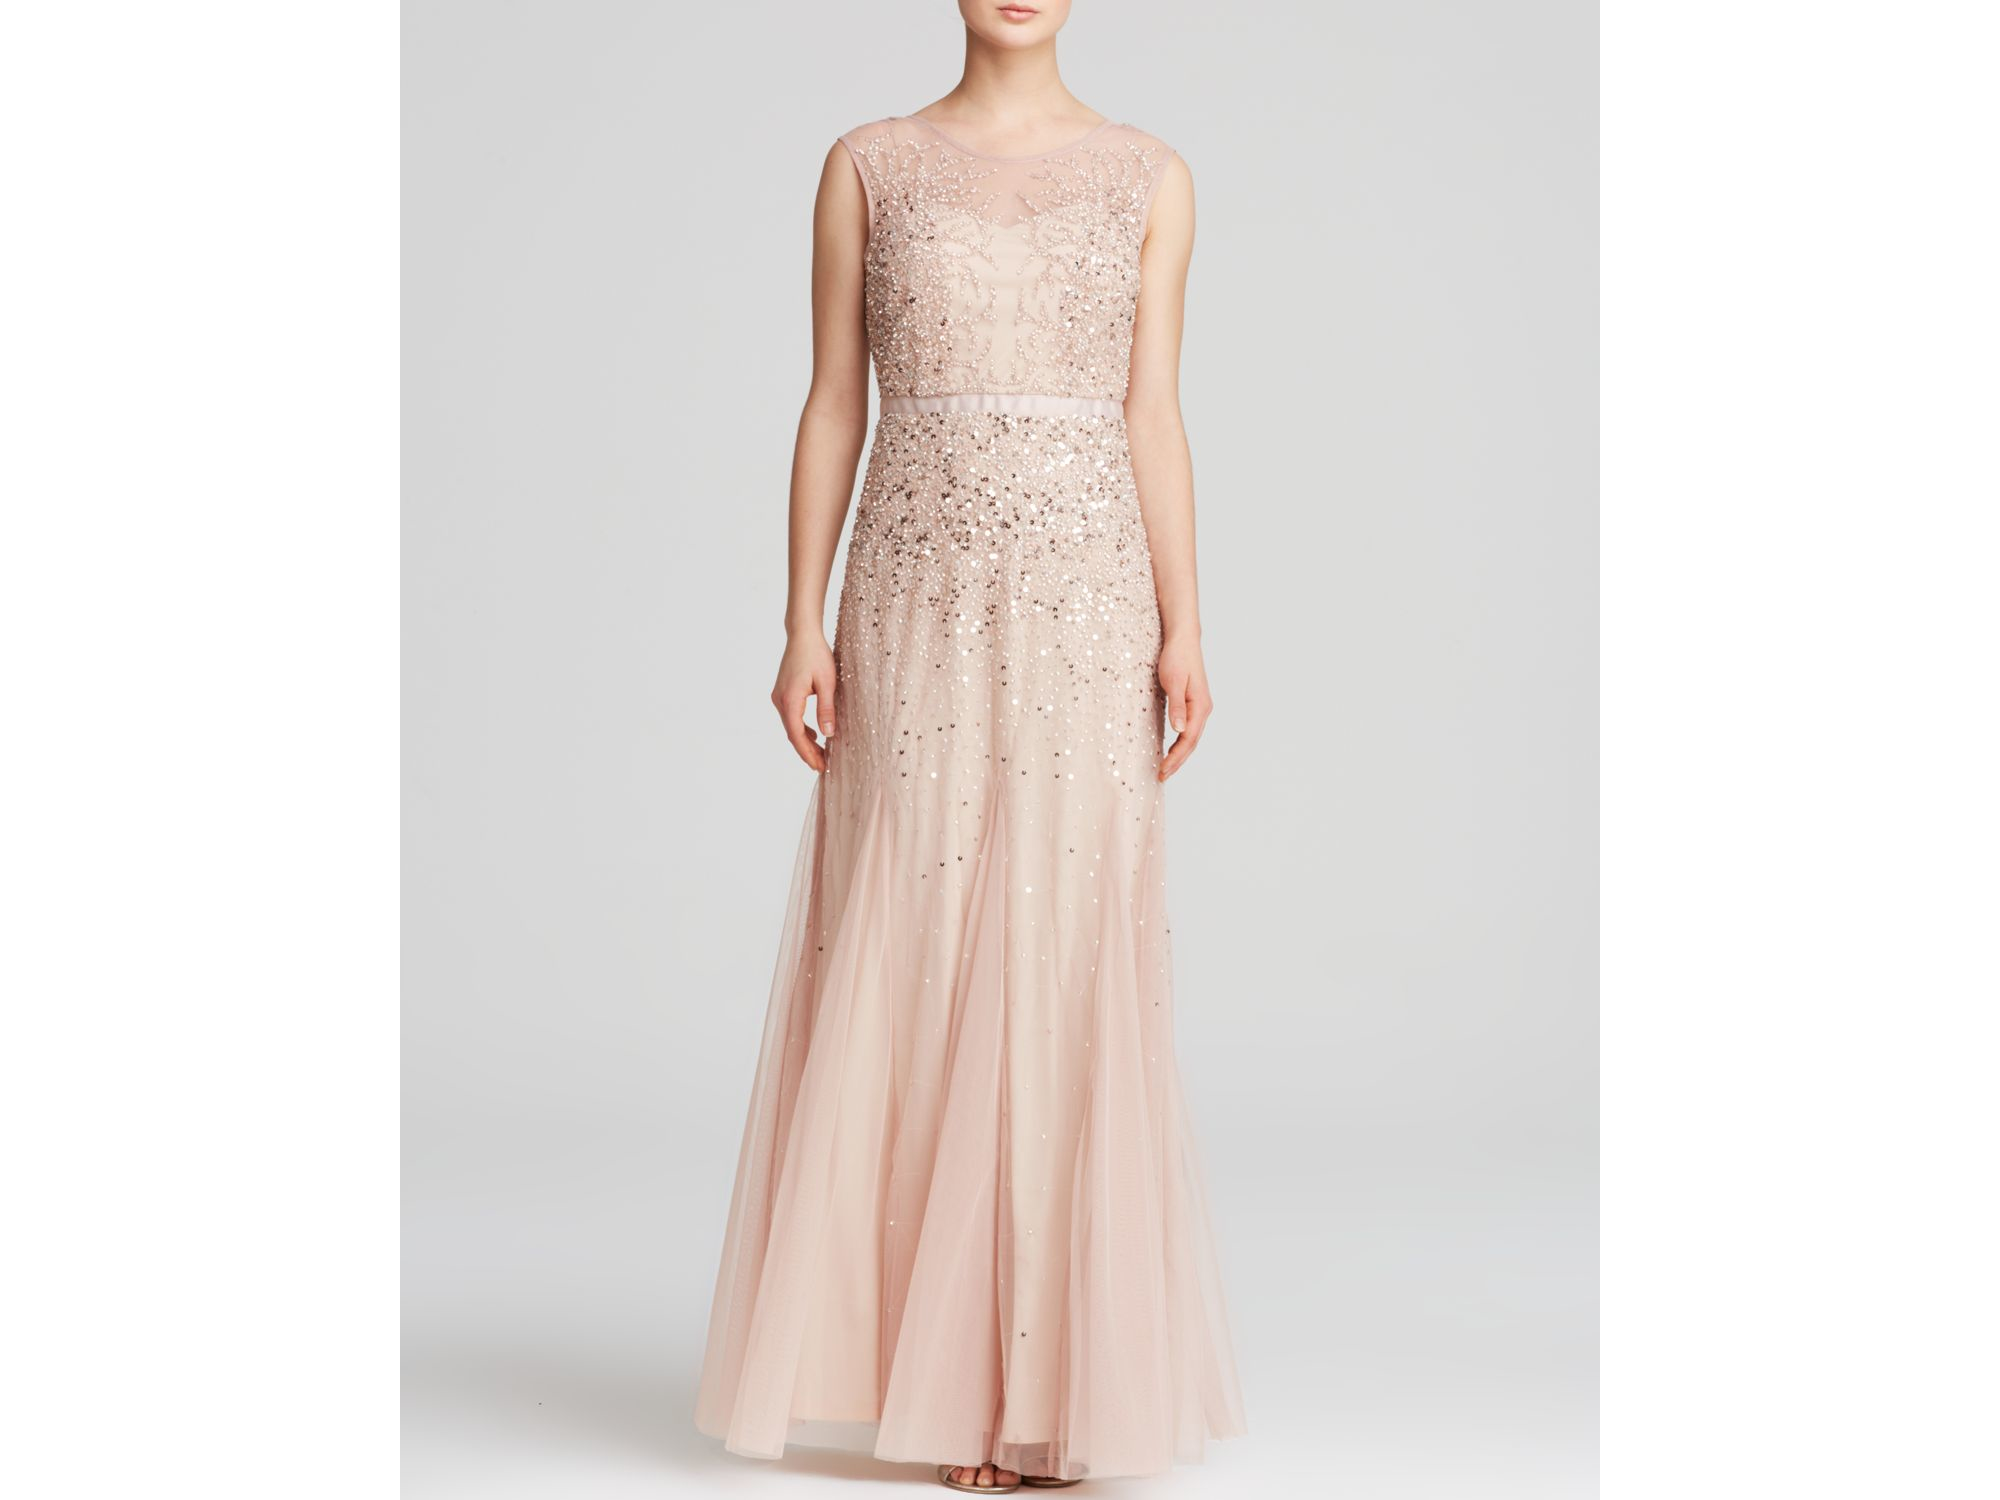 e3d5f09e3d82 Adrianna Papell Gown - Illusion Beaded in Pink - Lyst